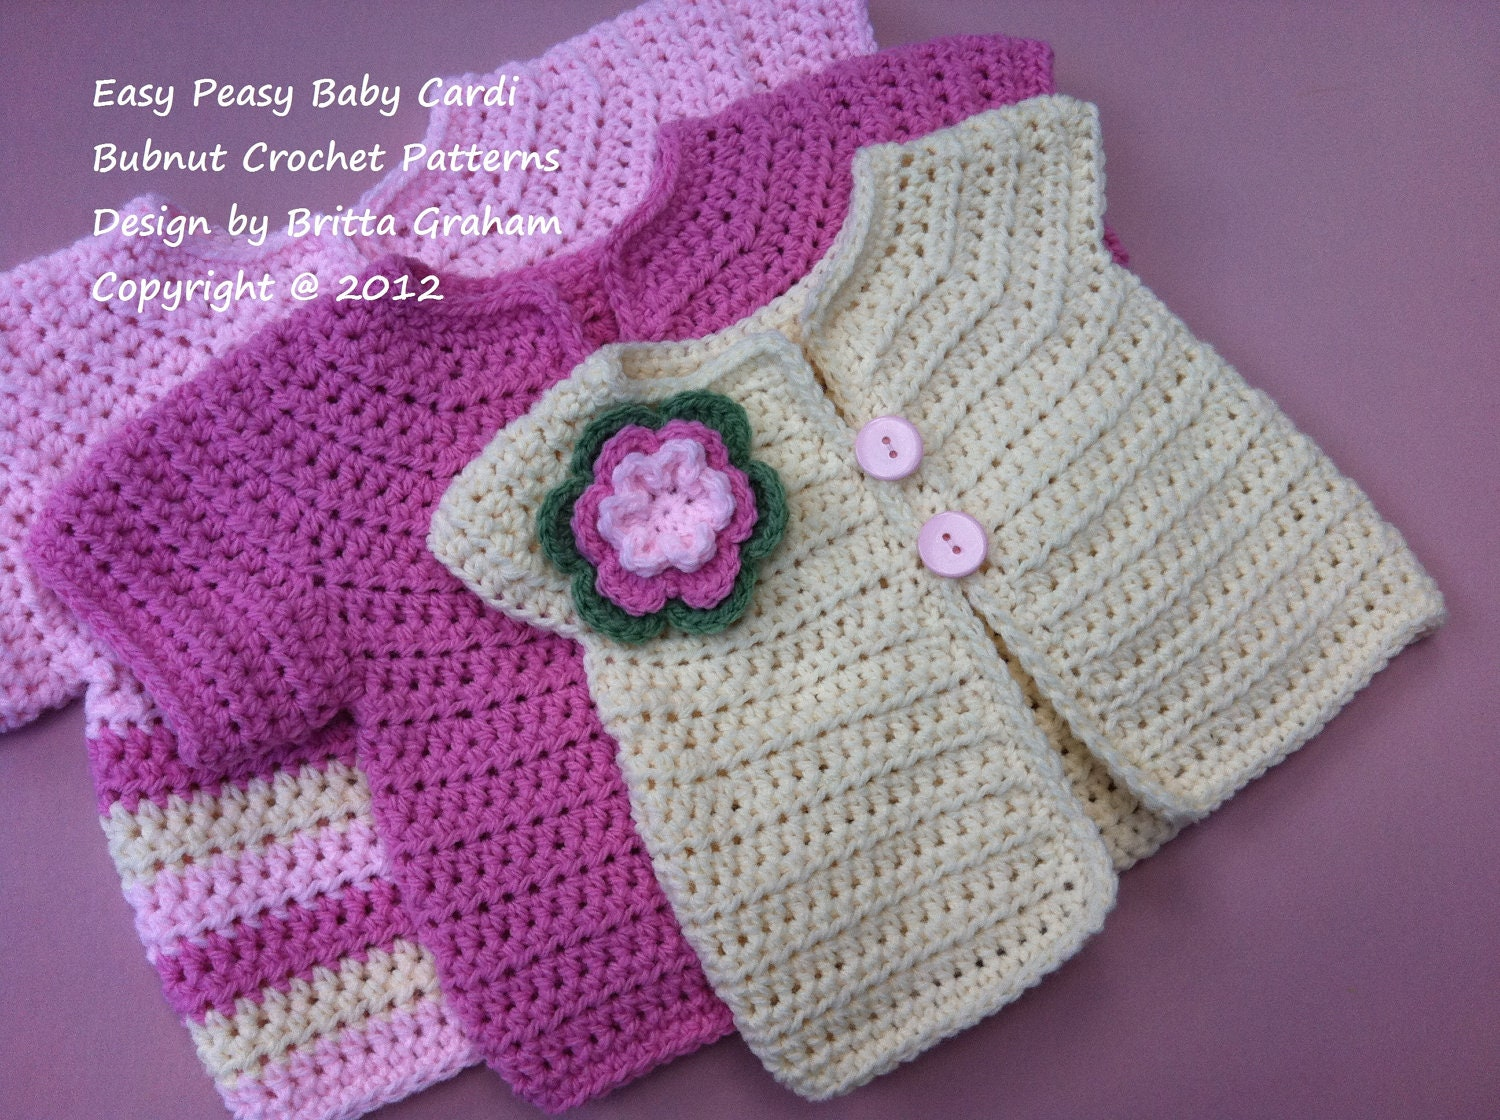 Crochet Baby Jacket Pattern Easy Peasy Cardigan by bubnutPatterns